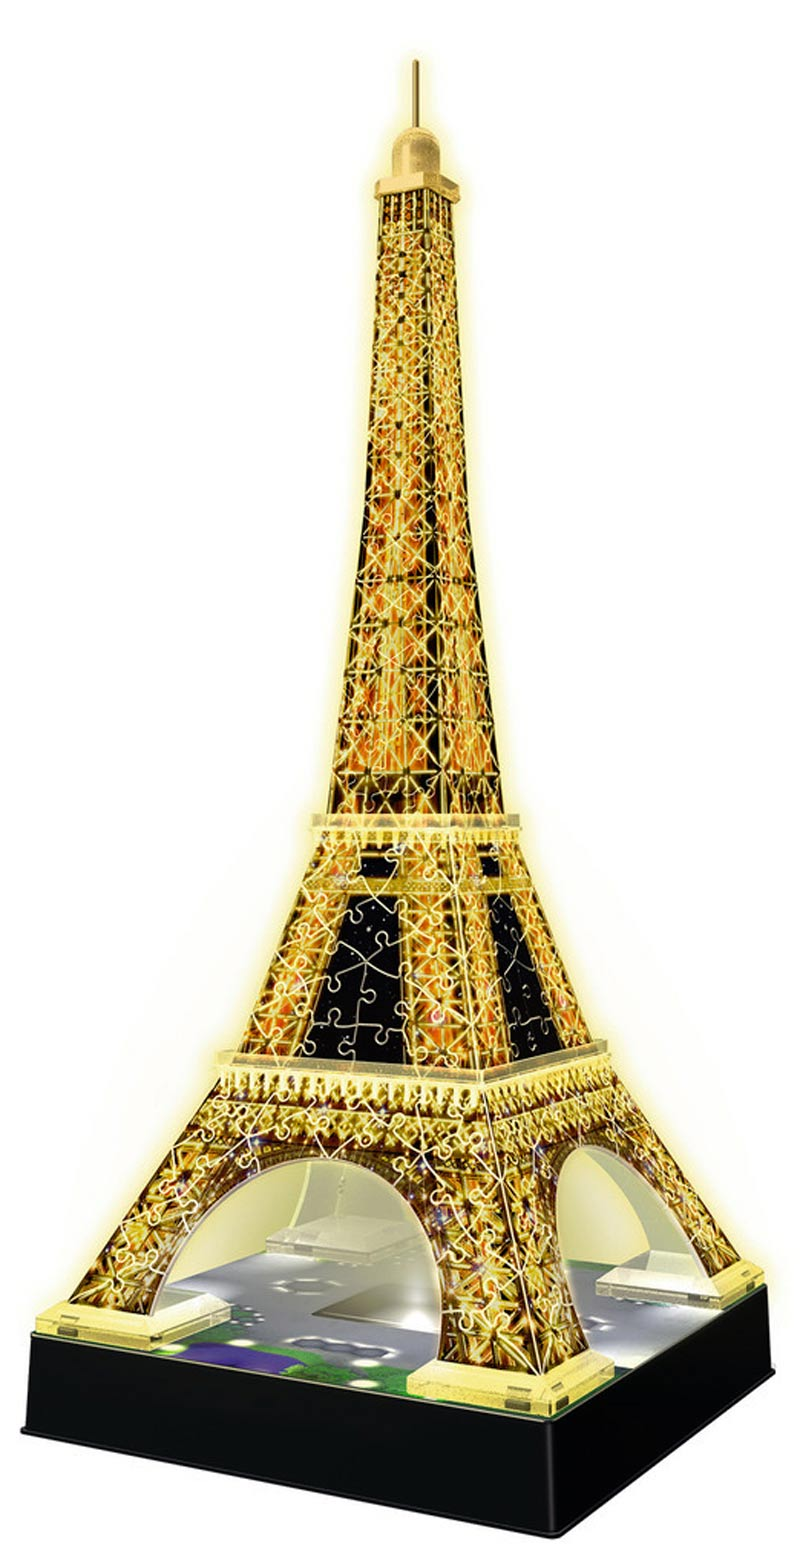 Eiffel Tower - Night Edition Eiffel Tower Jigsaw Puzzle